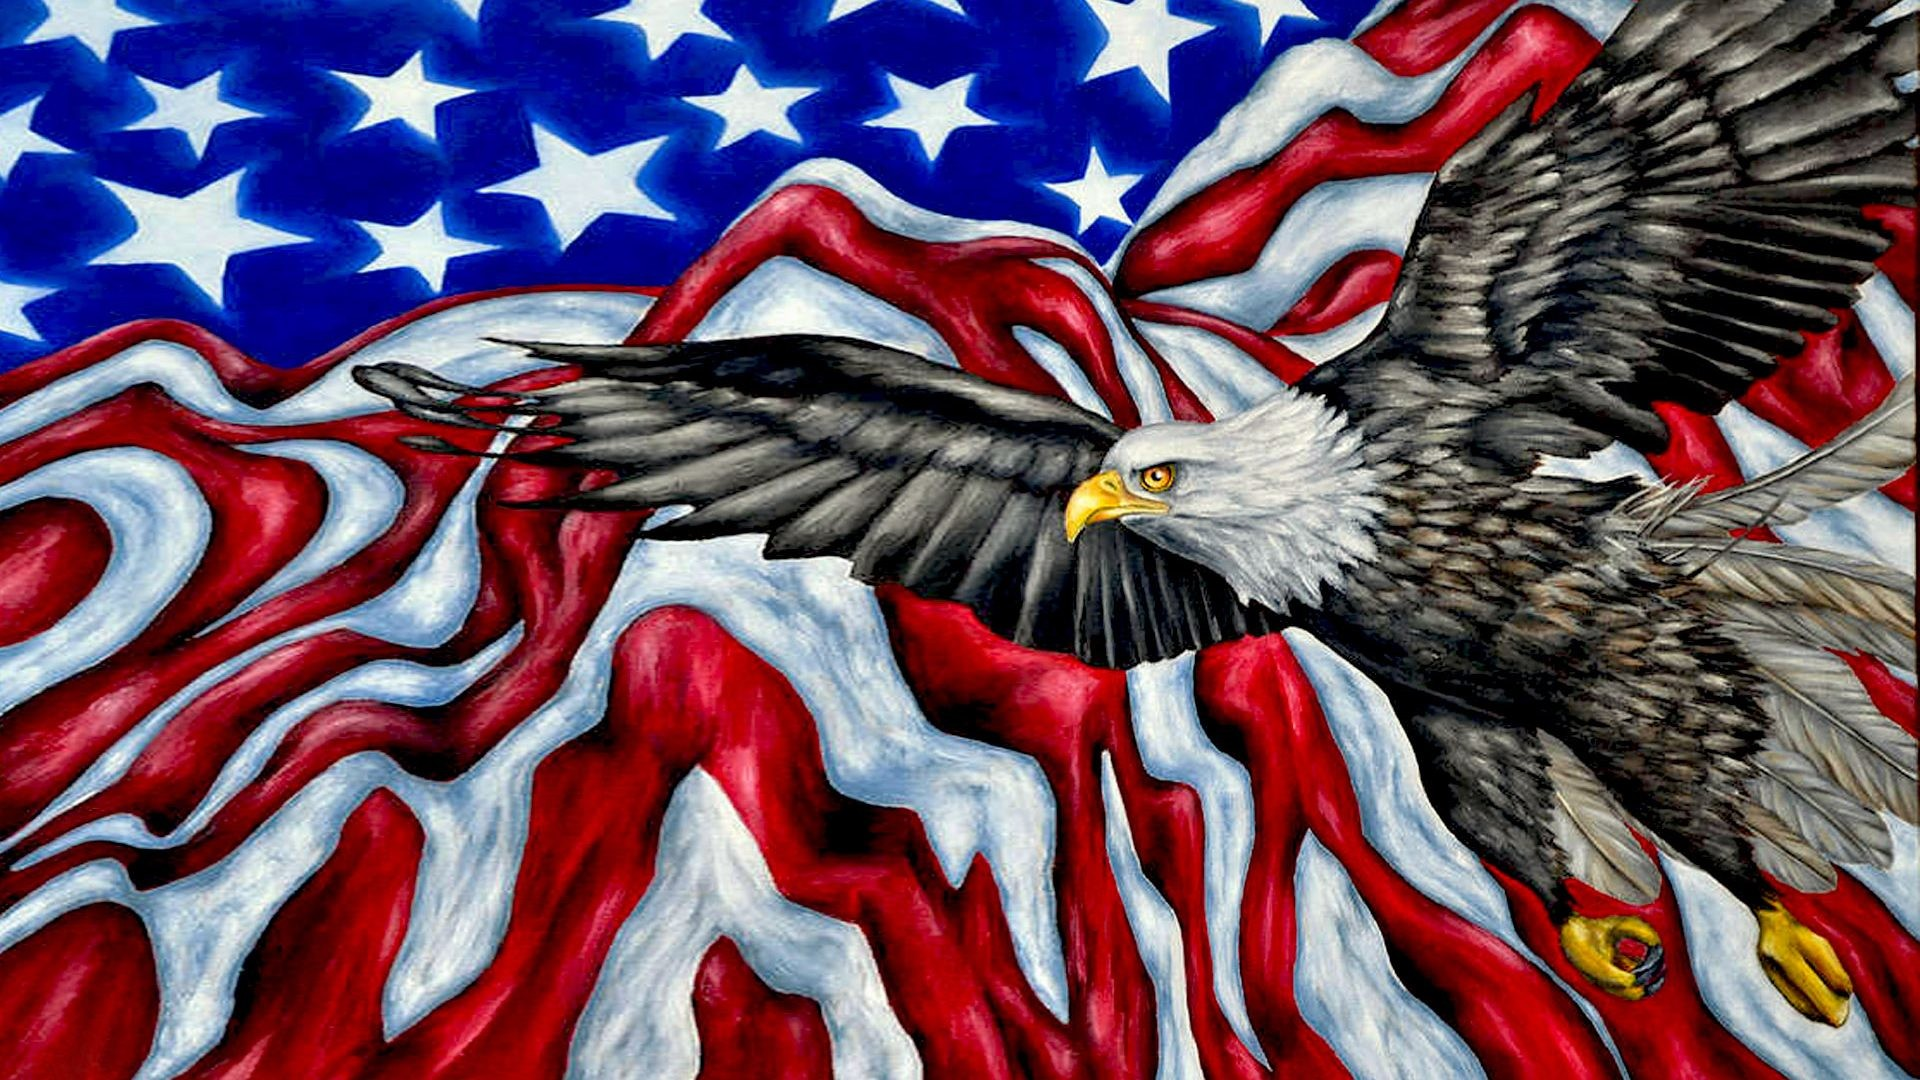 Res: 1920x1080, Usa Flag 1920×1080 Backgrounds Is 4K Wallpaper